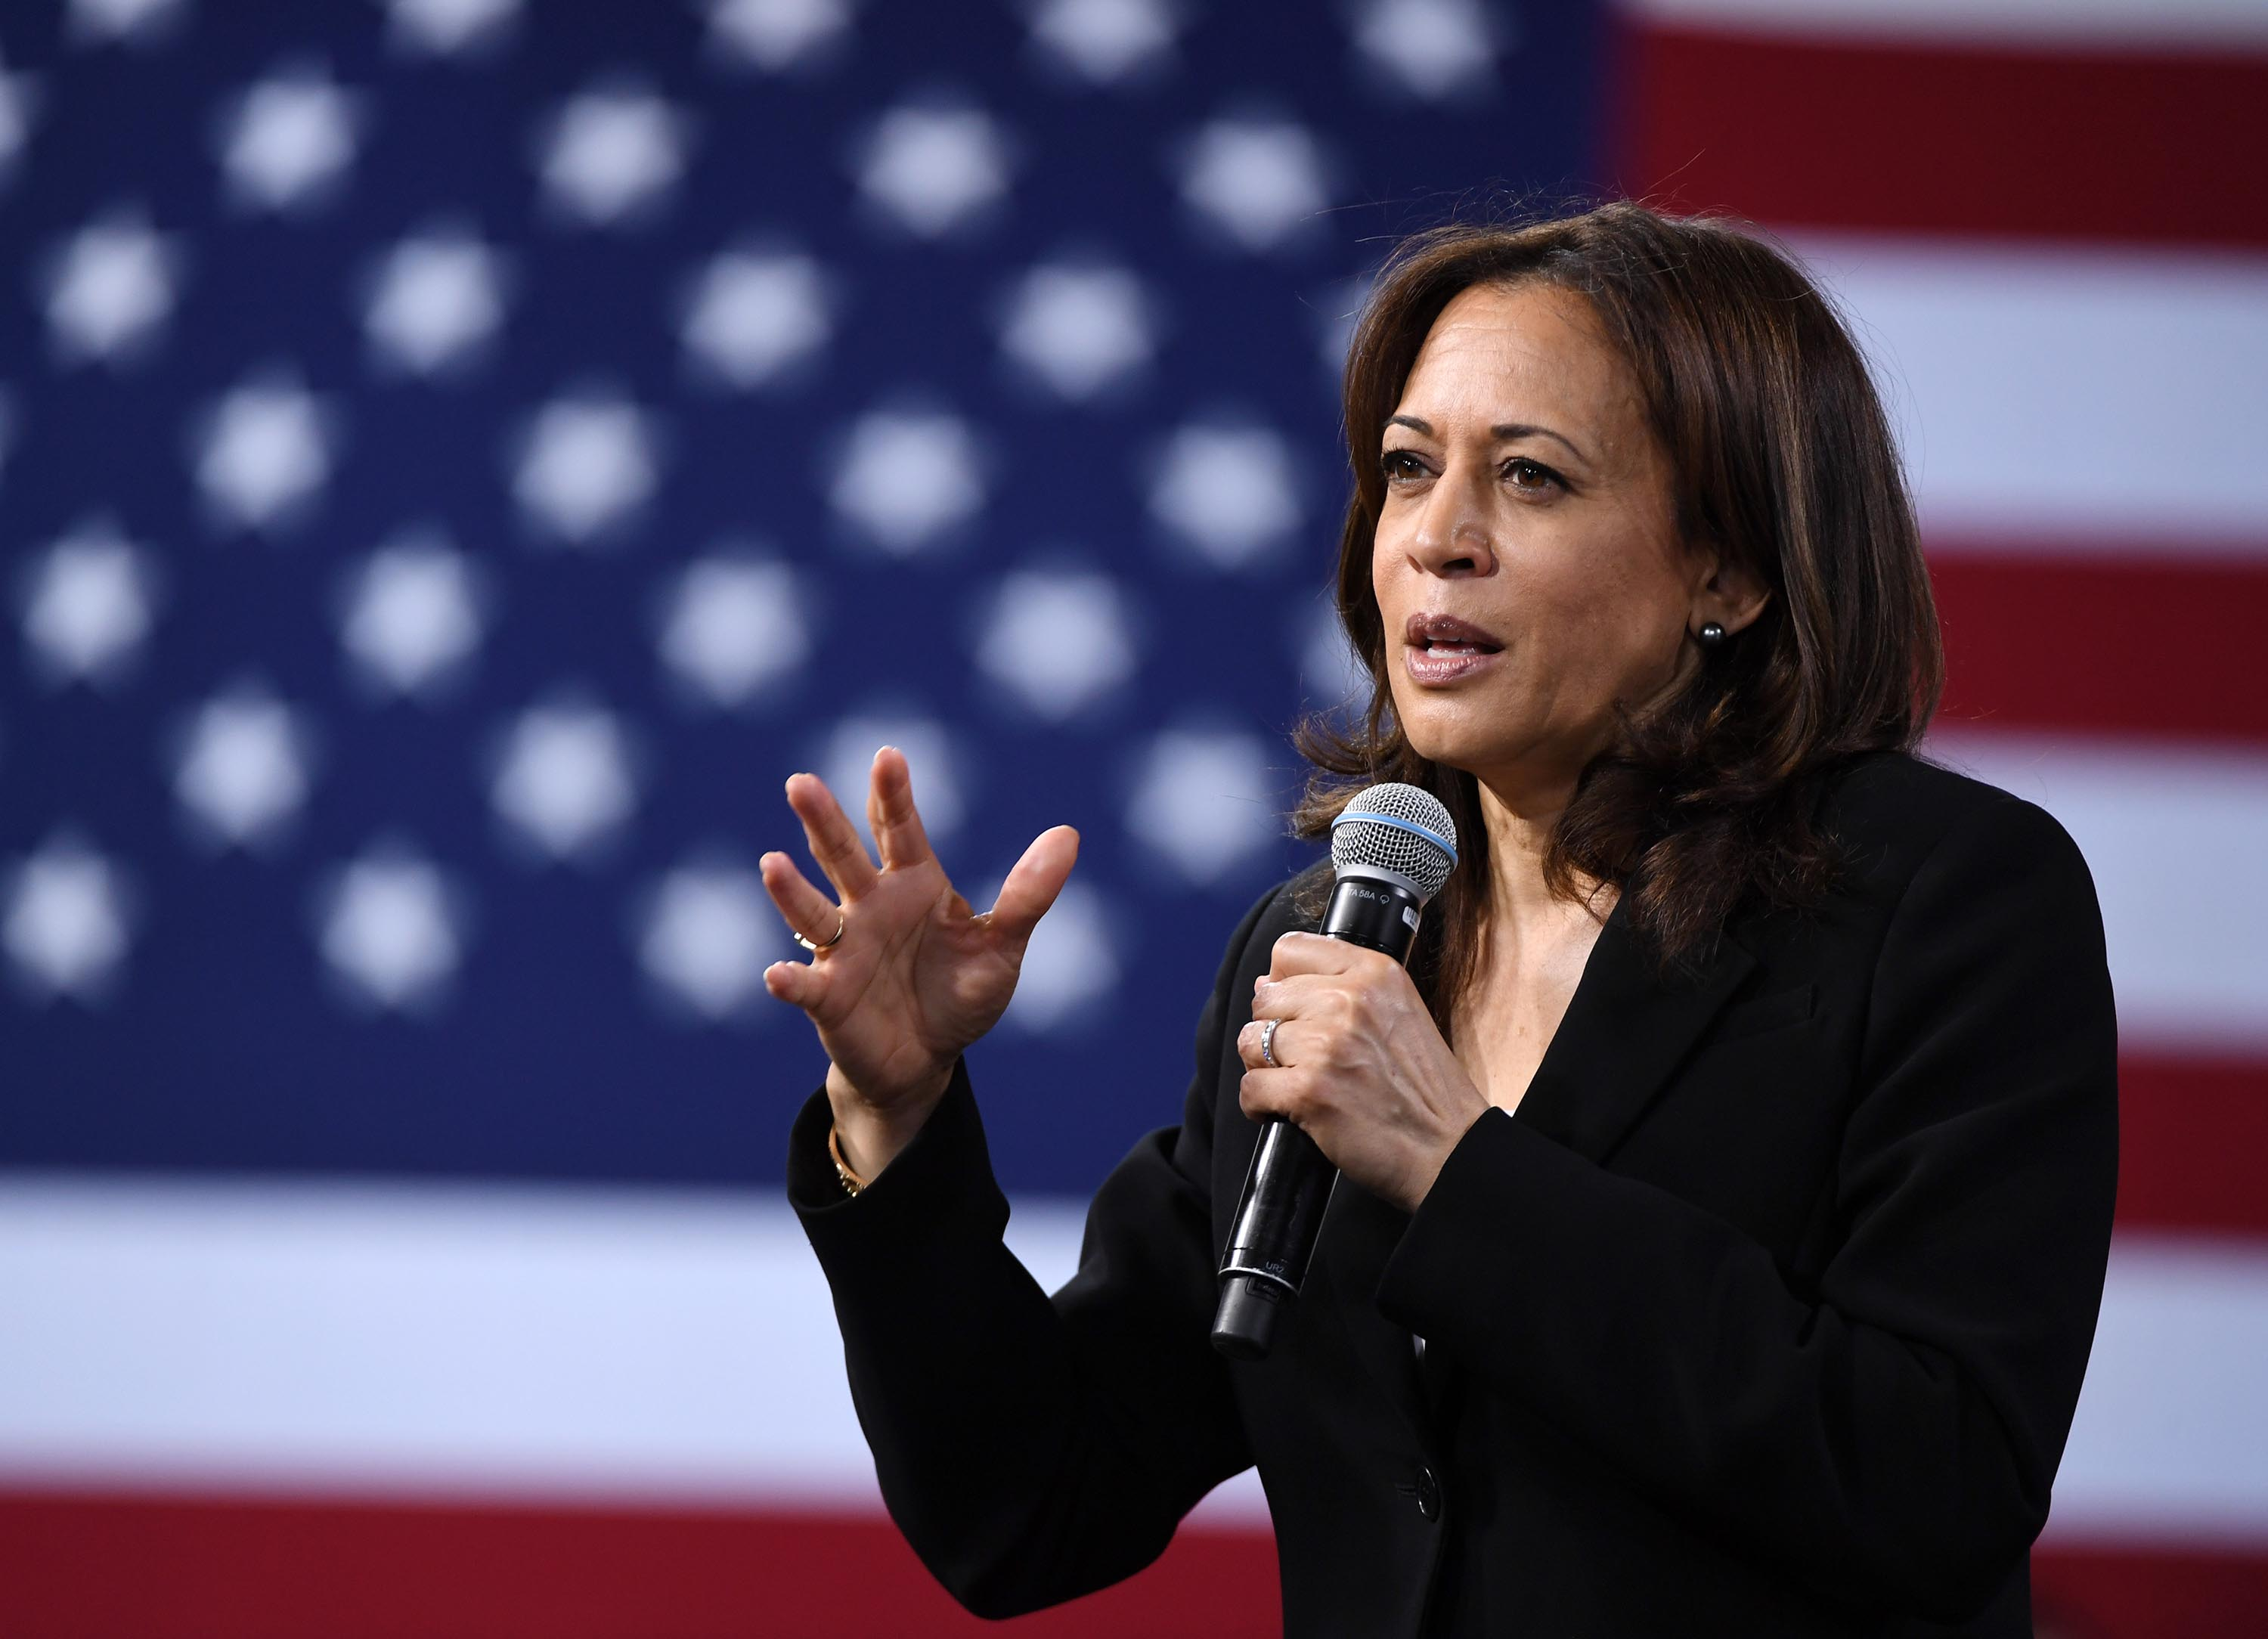 Kamala Harris' exit sparks frantic scramble among former rivals to win over her supporters